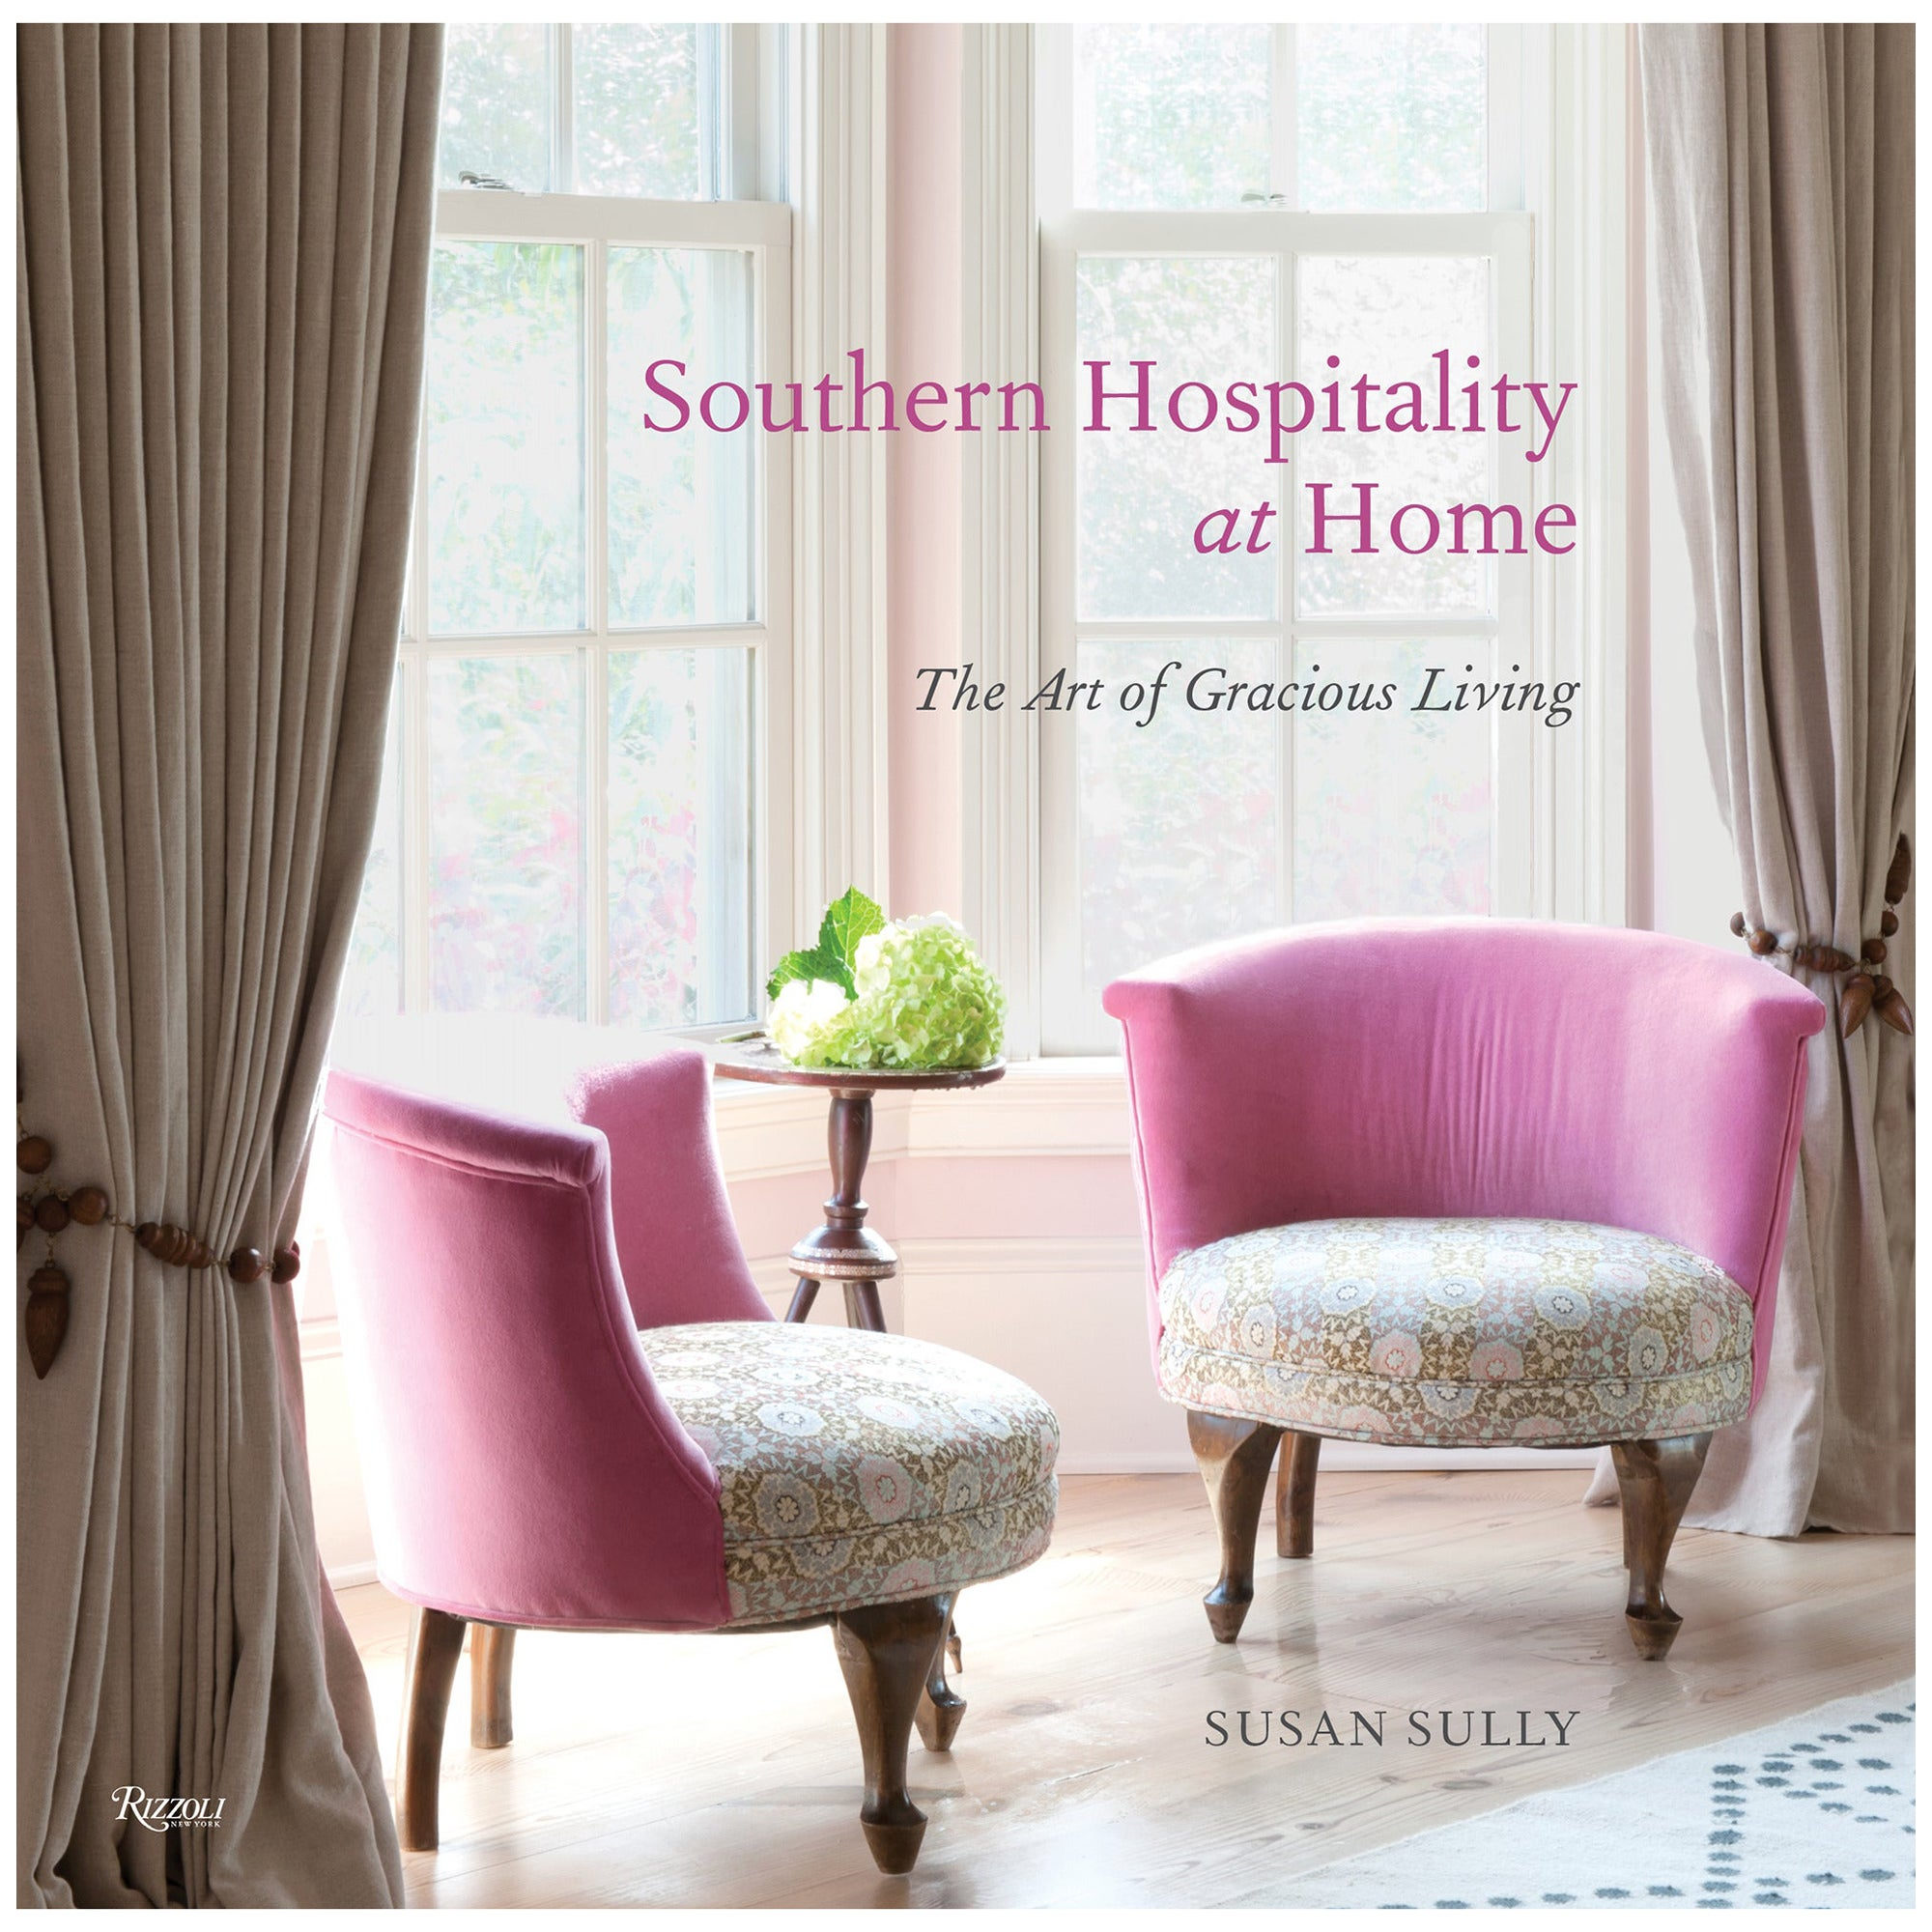 Southern Hospitality at Home The Art of Gracious Living